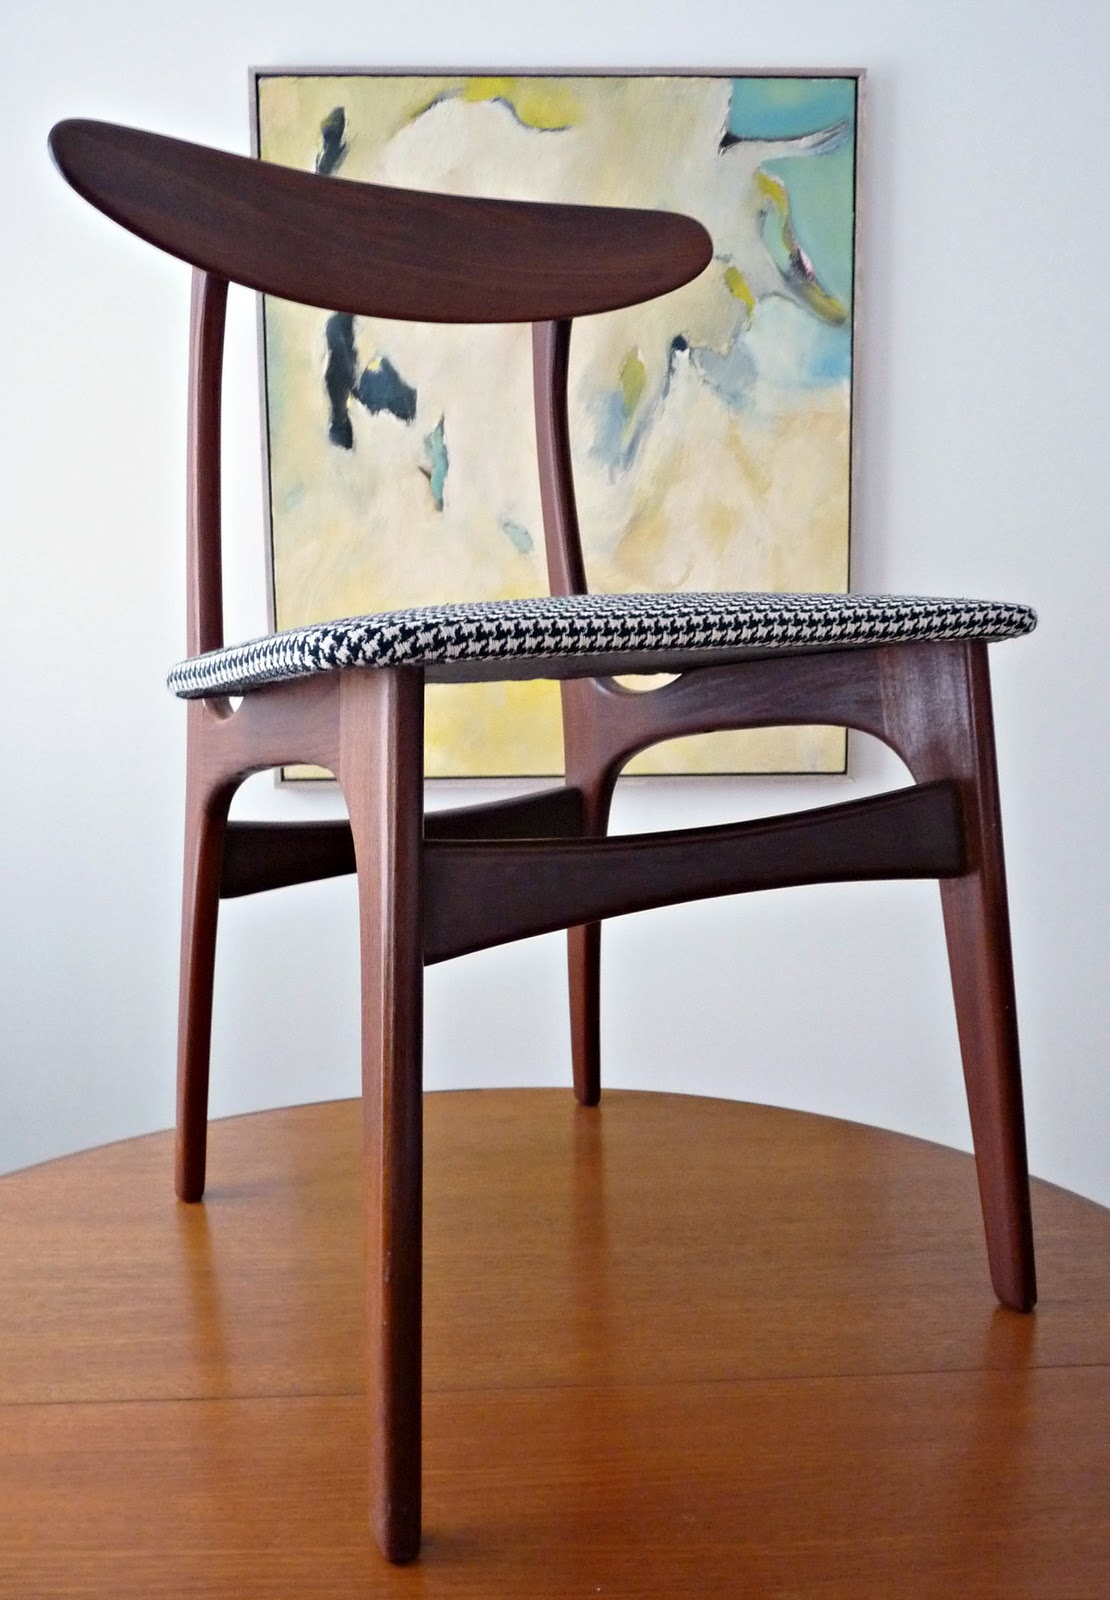 How To Reupholster Dining Chairs Diy Houndstooth Upholstered Vintage Teak Chairs Dans Le Lakehouse